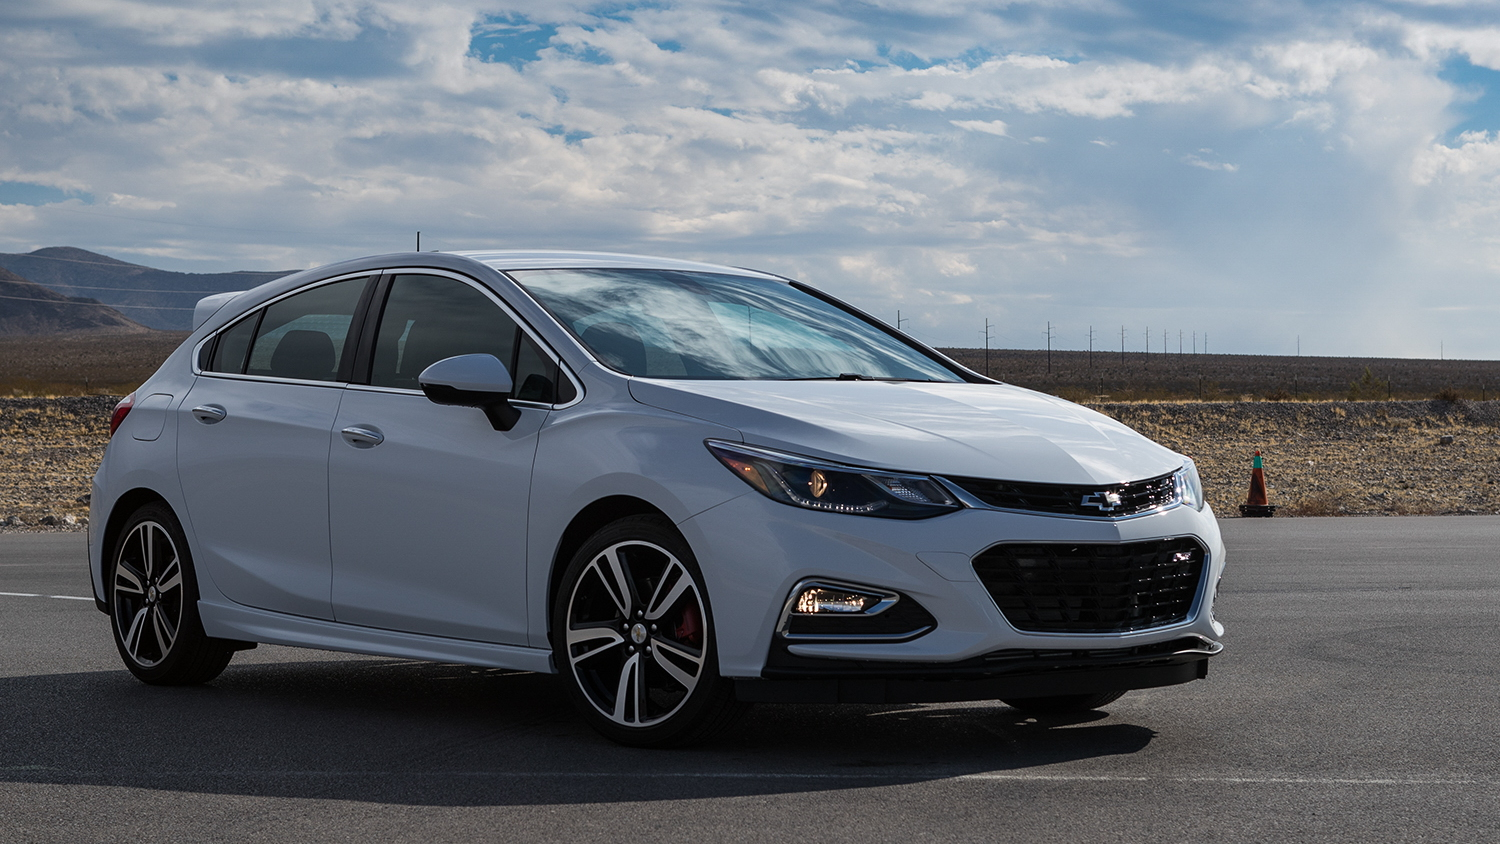 2017 Chevrolet Cruze hatcbhack with Chevrolet Performance Parts